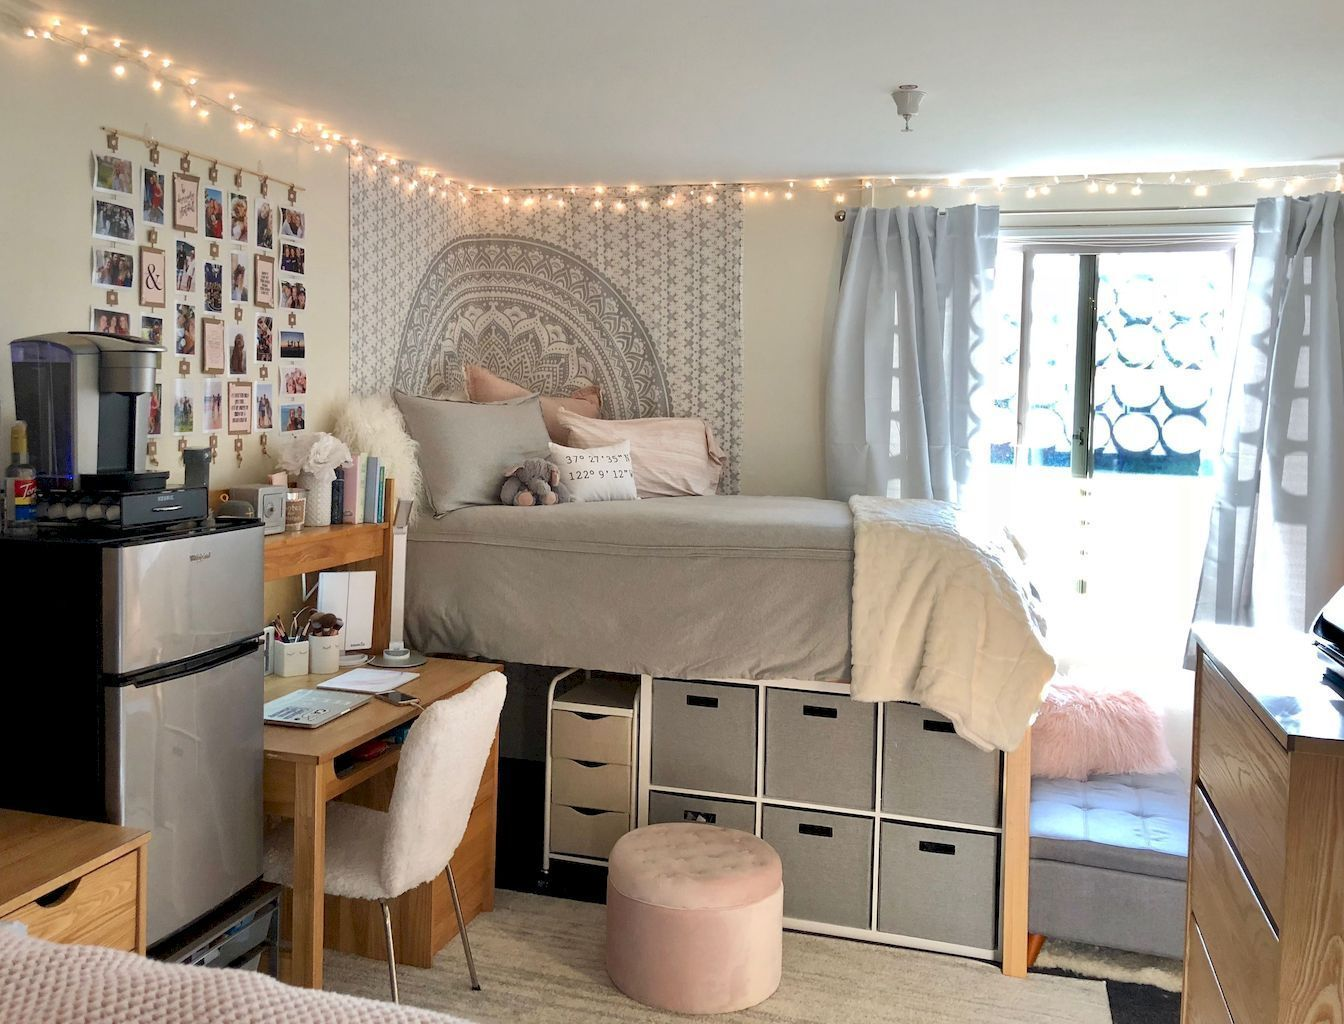 46 Clever Dorm Room Organizing Storage Ideas On A Budget